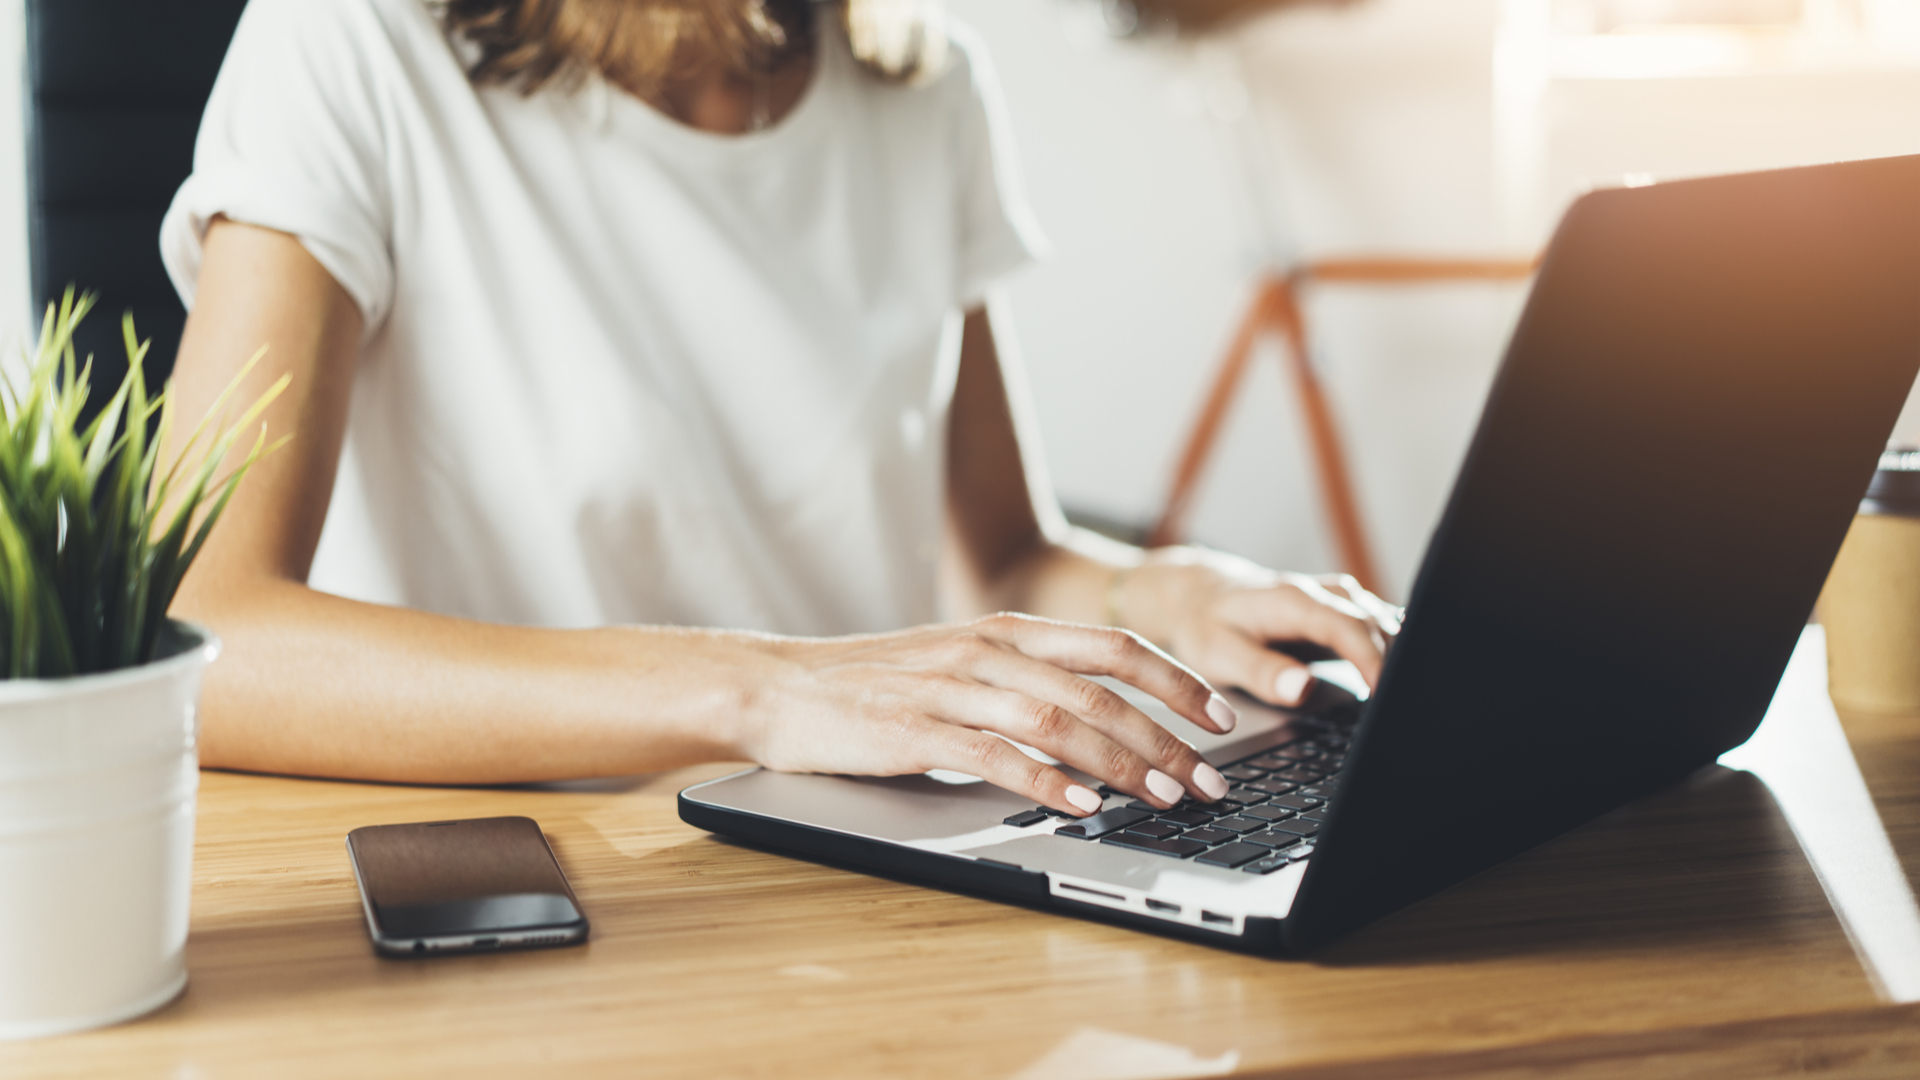 How do I connect my laptop to the TV? | TechRadar